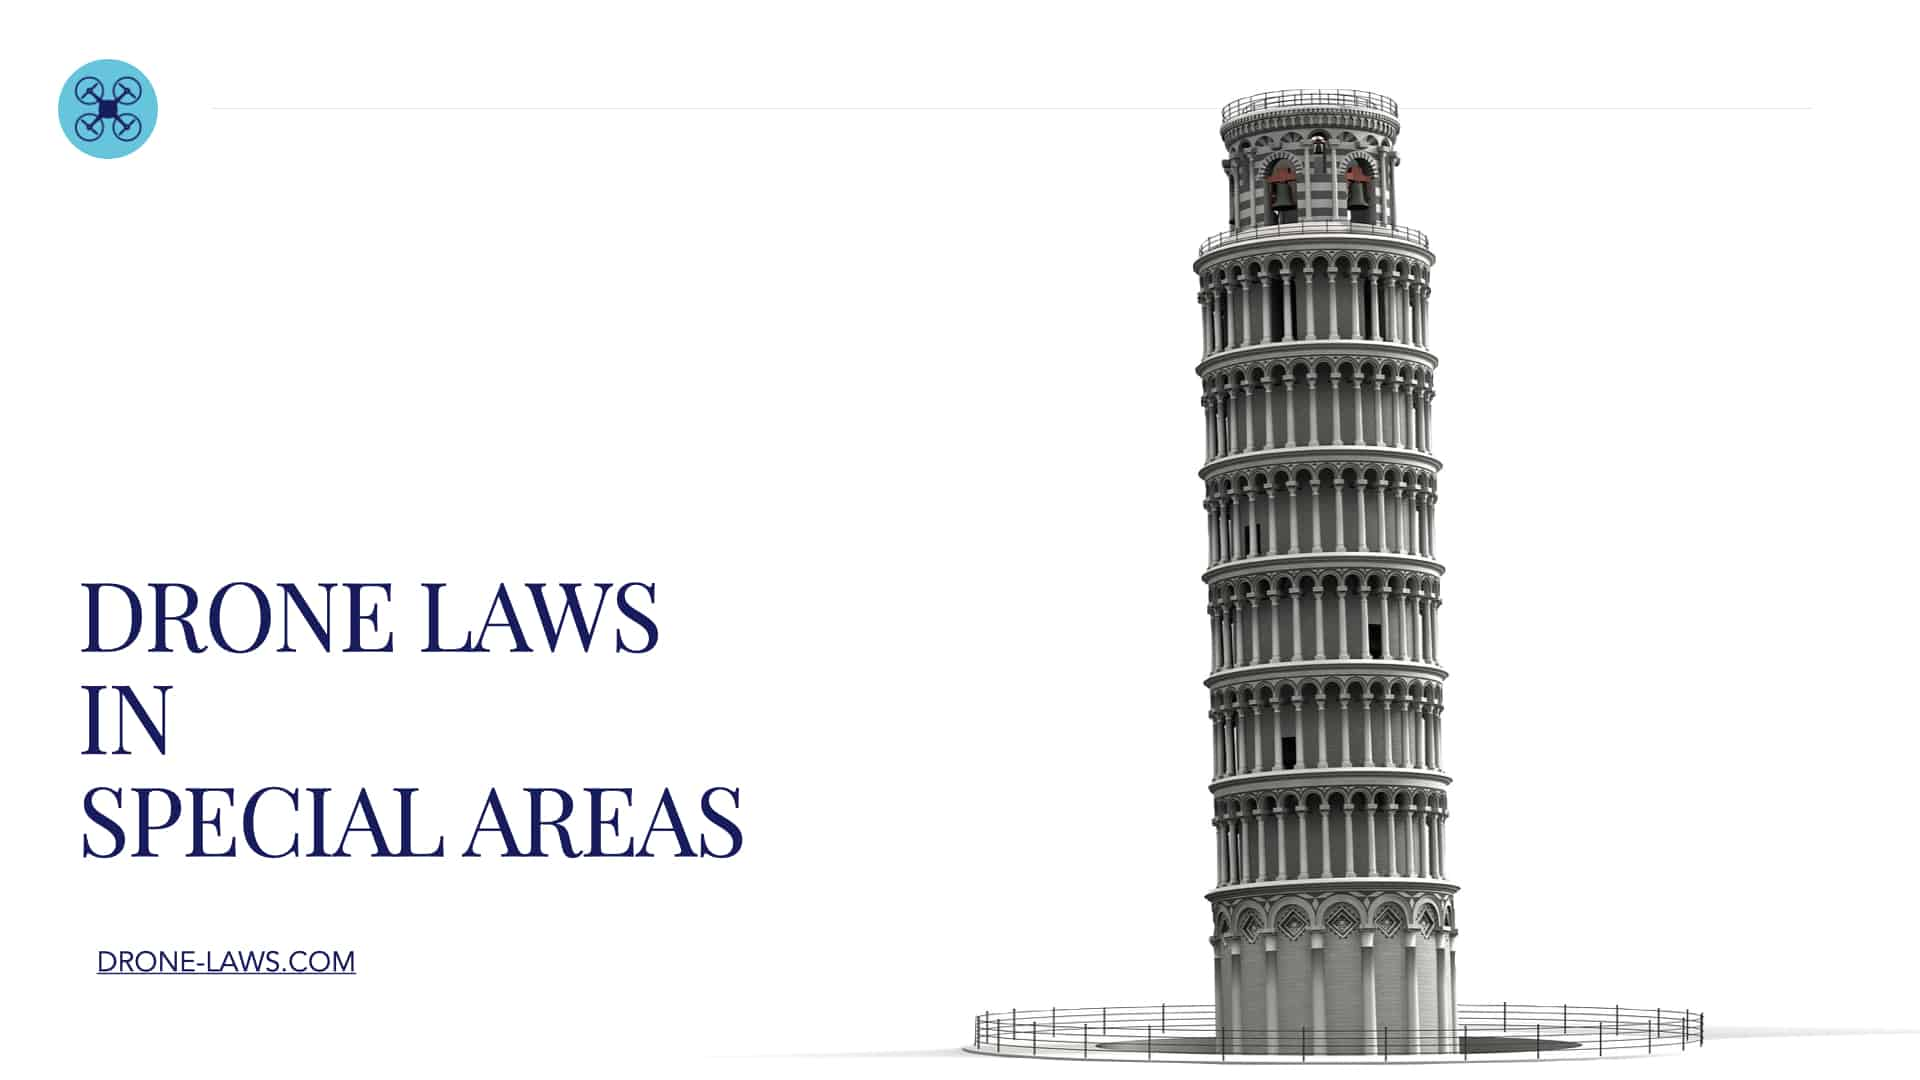 Drone Laws in Special Areas